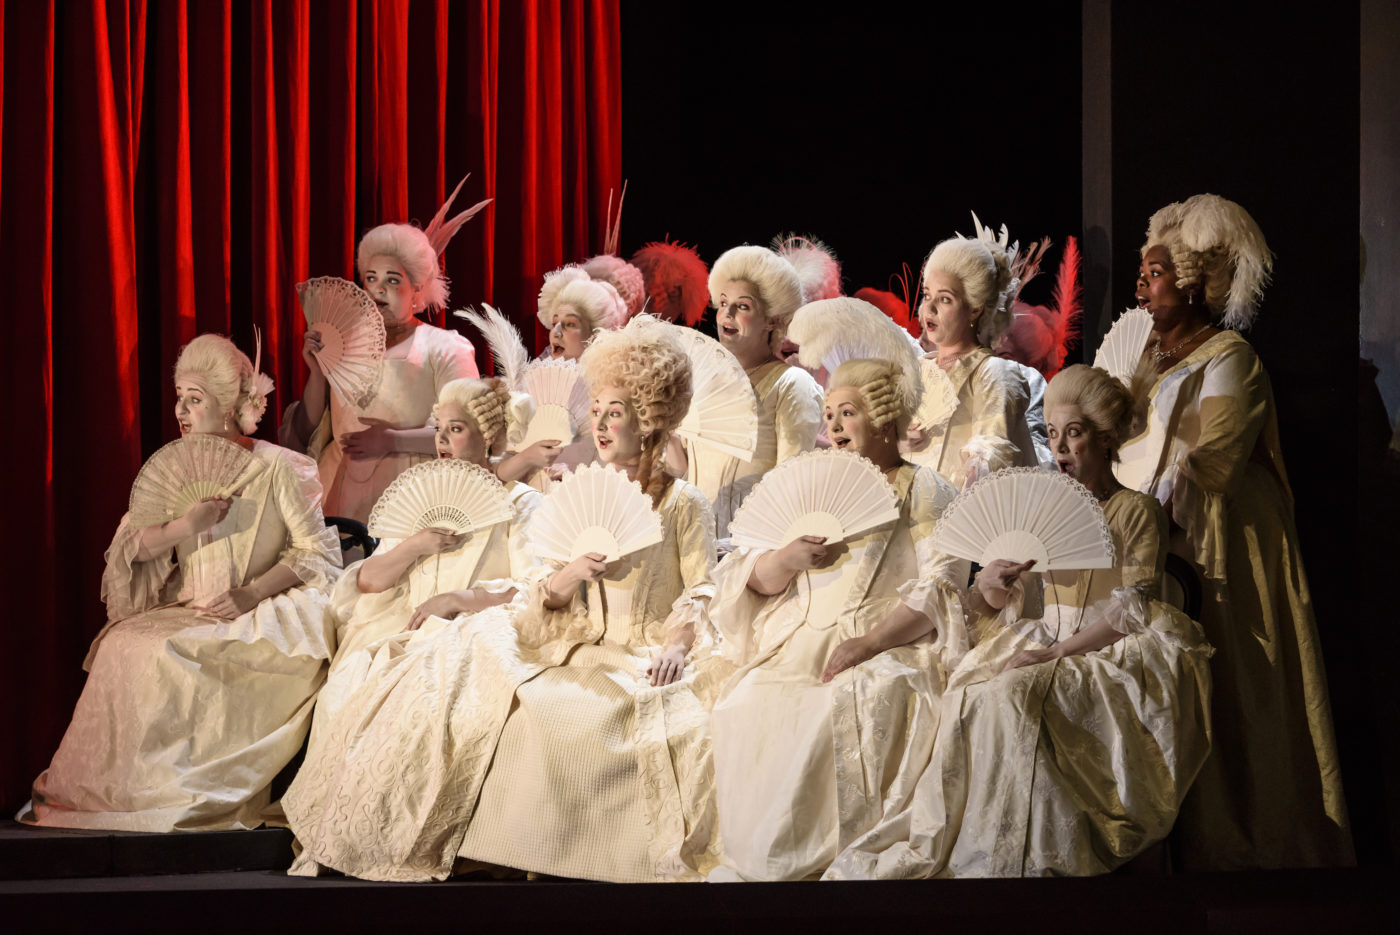 A chorus of ten women, each dressed in white with a open fan held at her chin. They wear powdered wigs and heavy chalky makeup, and sing as they watch with delight at what is happening on stage. Photo credit: Bill Cooper.